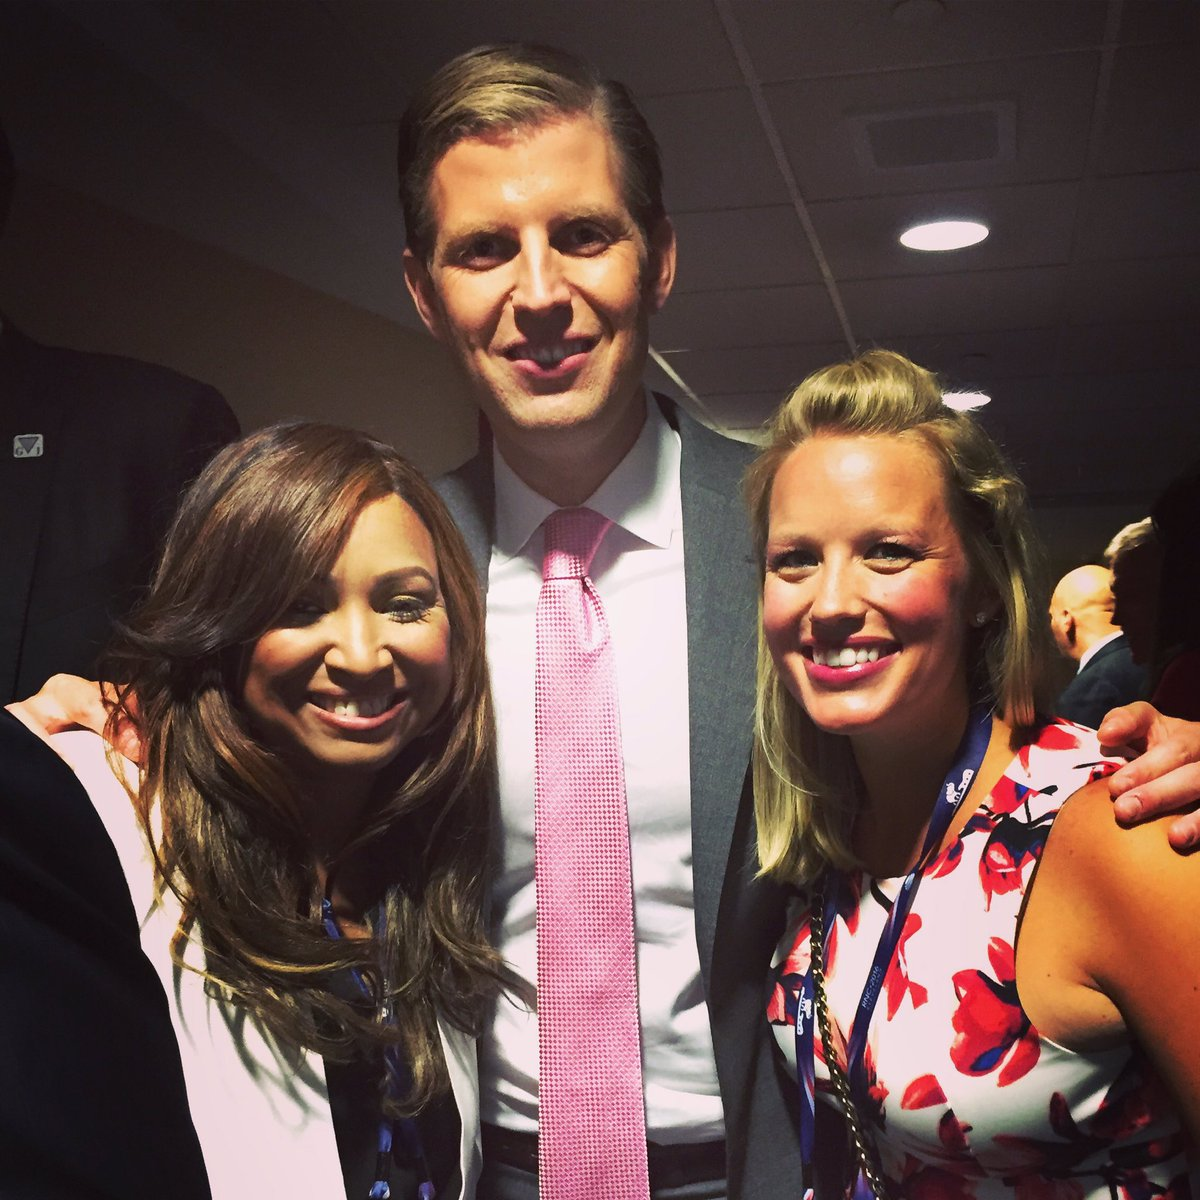 So proud of our Founder, @EricTrump & our VP, @LynnePatton, who both brought recognition last night to @StJude!